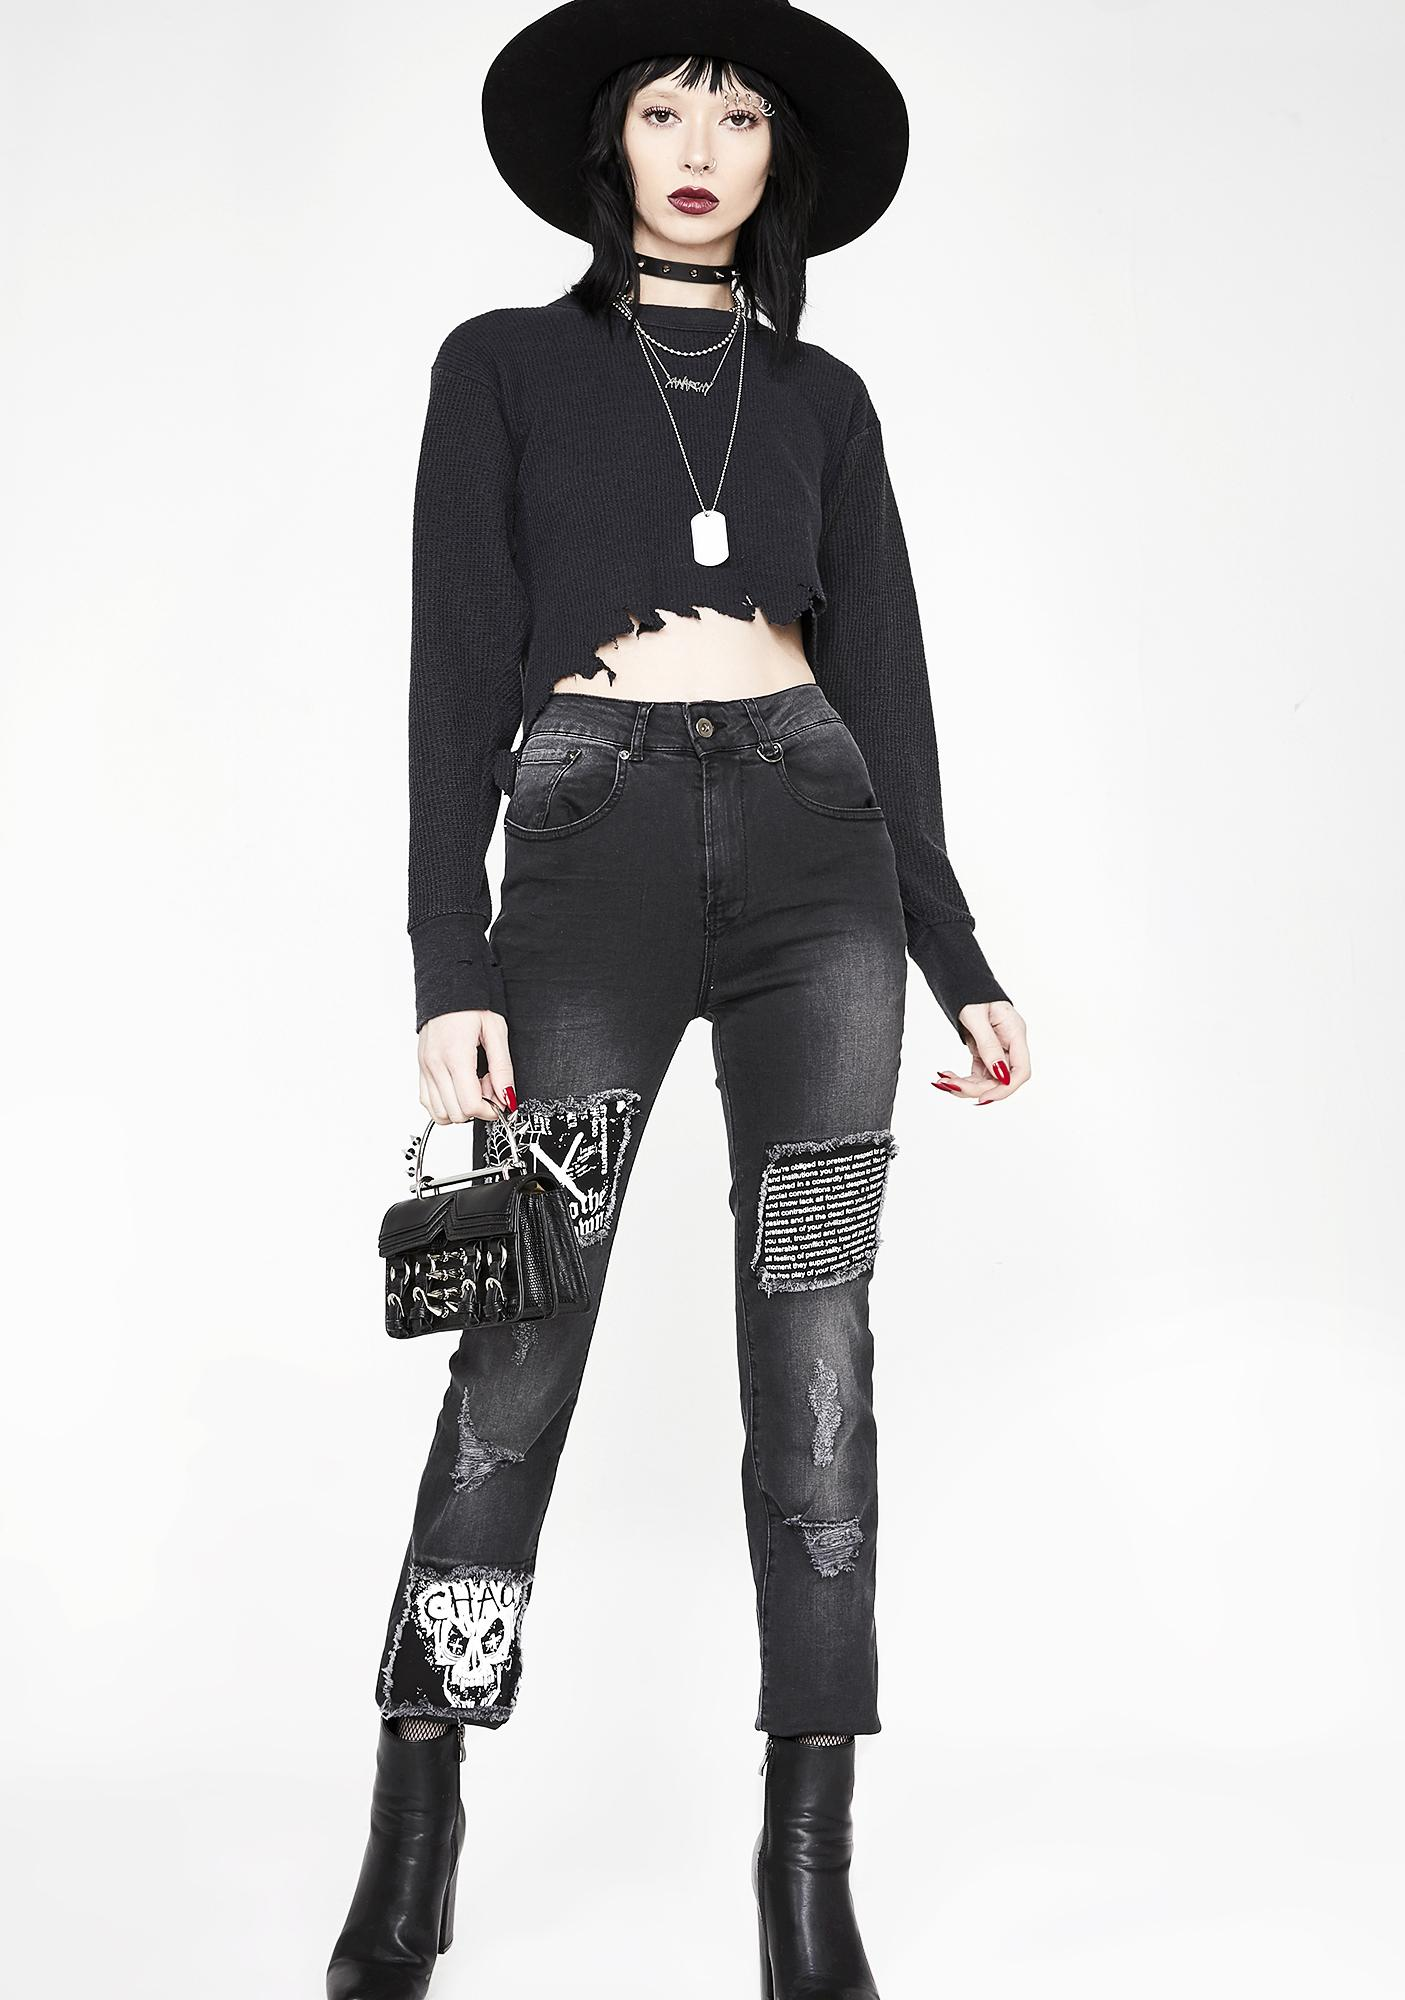 Disturbia Chaos Patched Jeans